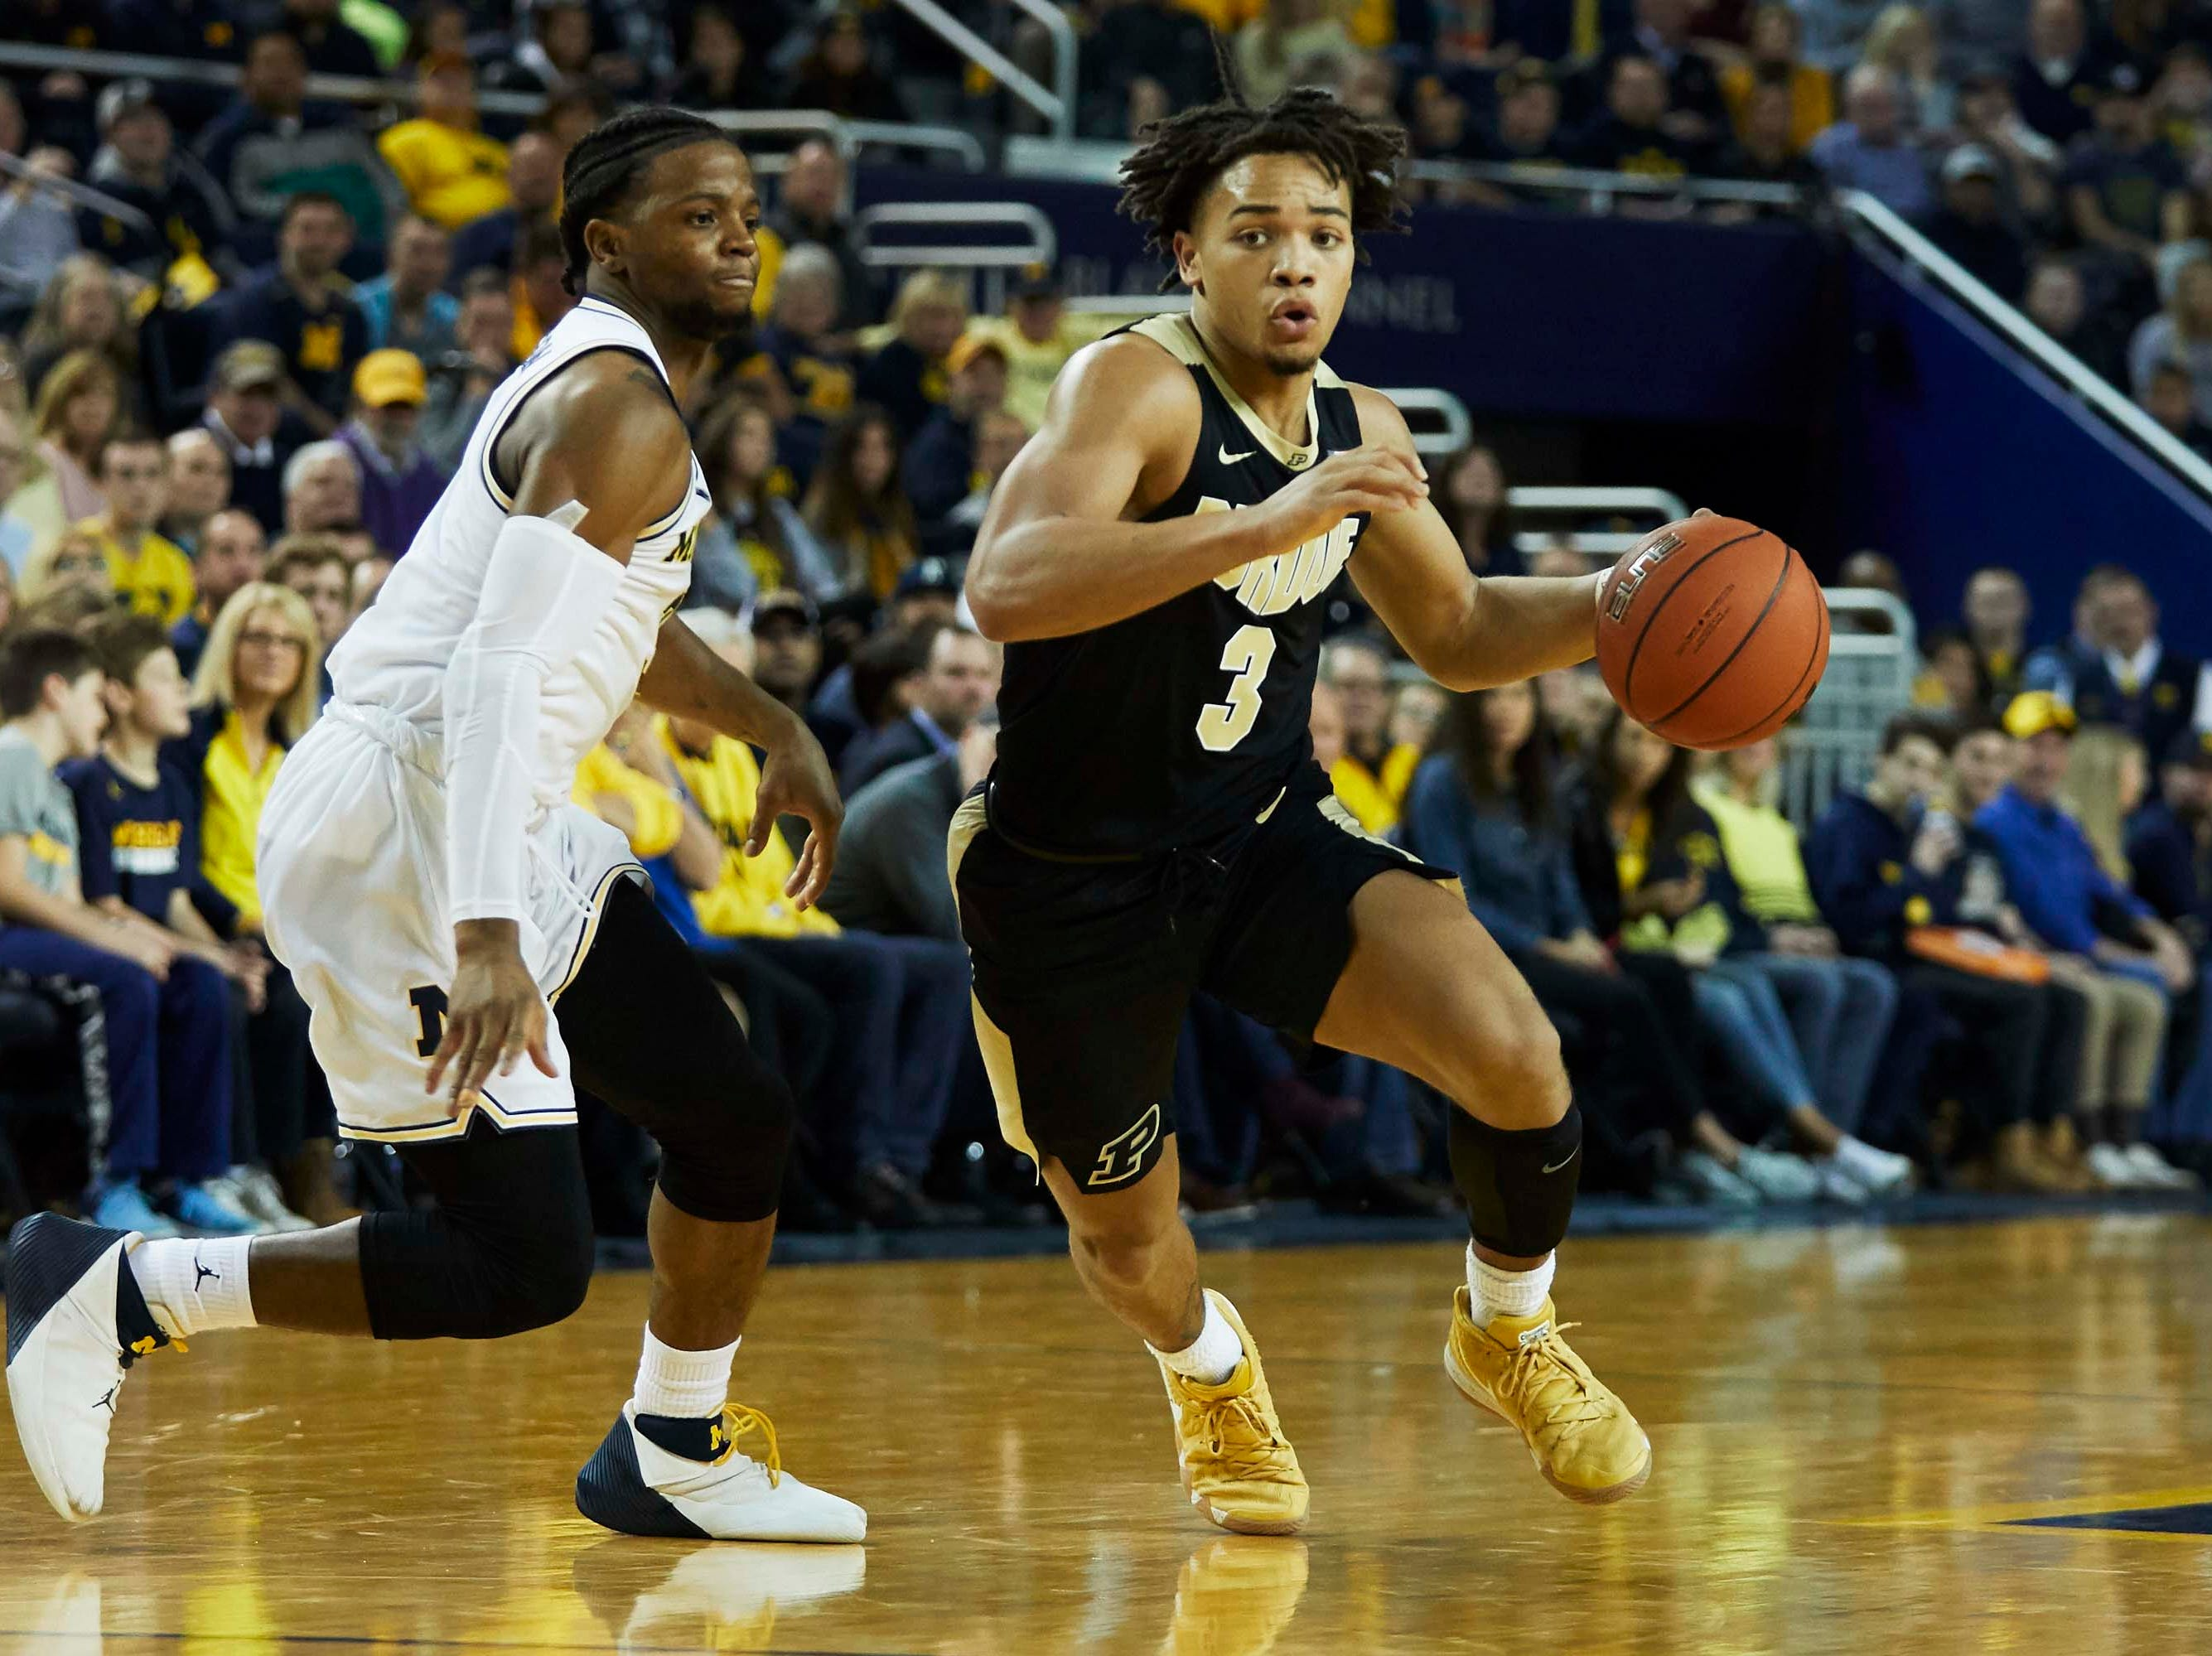 Dec 1, 2018; Ann Arbor, MI, USA; Purdue Boilermakers guard Carsen Edwards (3) dribbles on Michigan Wolverines guard Zavier Simpson (3) in the second half at Crisler Center. Mandatory Credit: Rick Osentoski-USA TODAY Sports